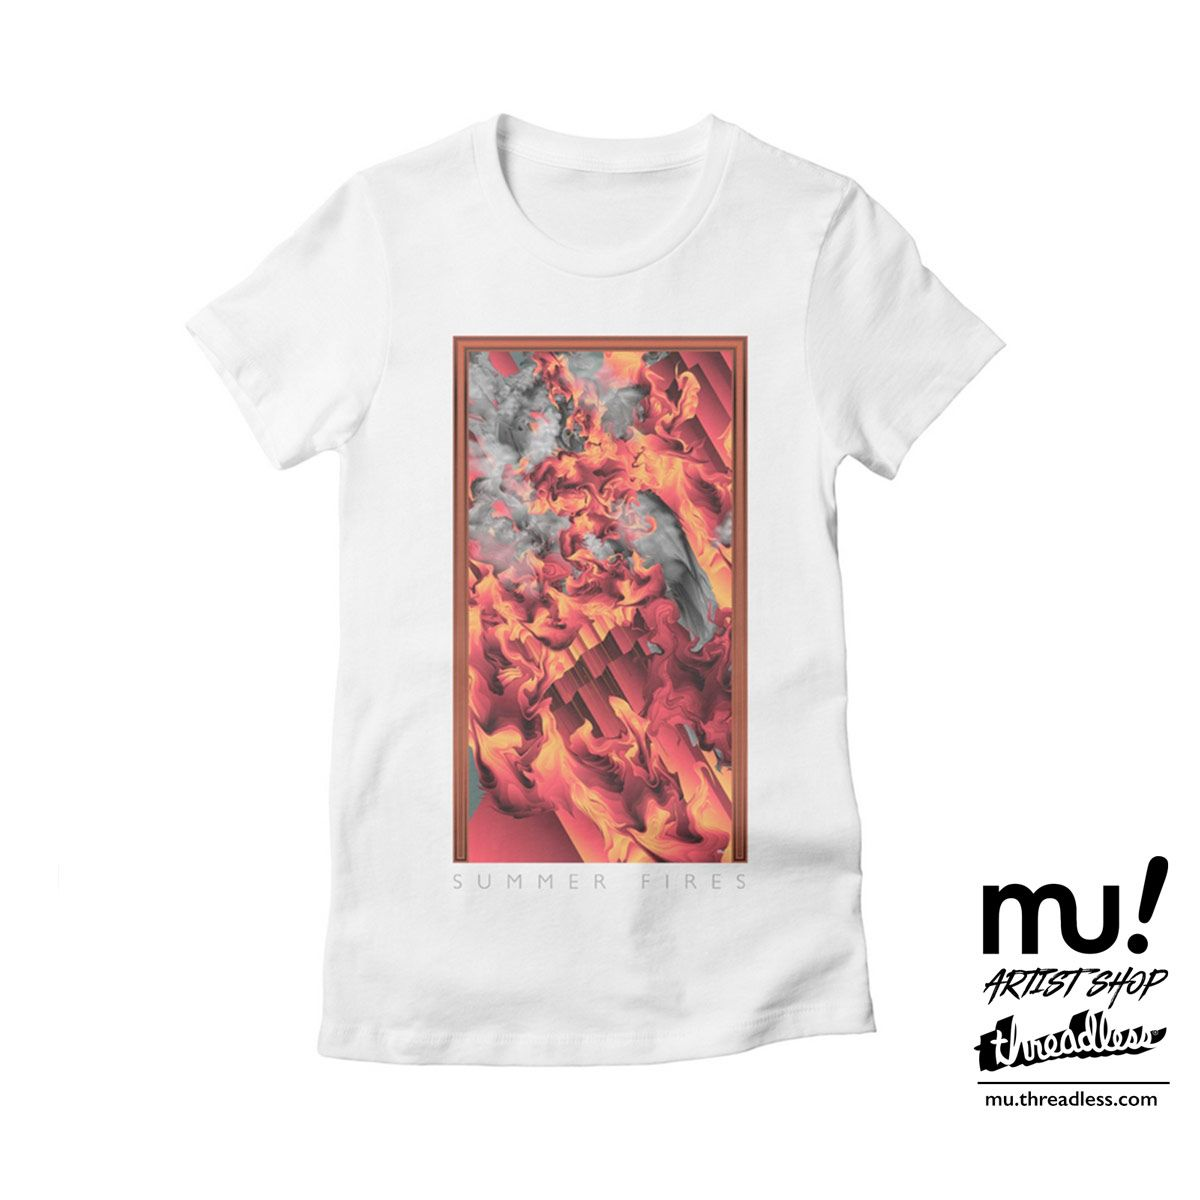 summer_reefs_mu_studio_sebastian_murra_shirt-logo_threadless_web